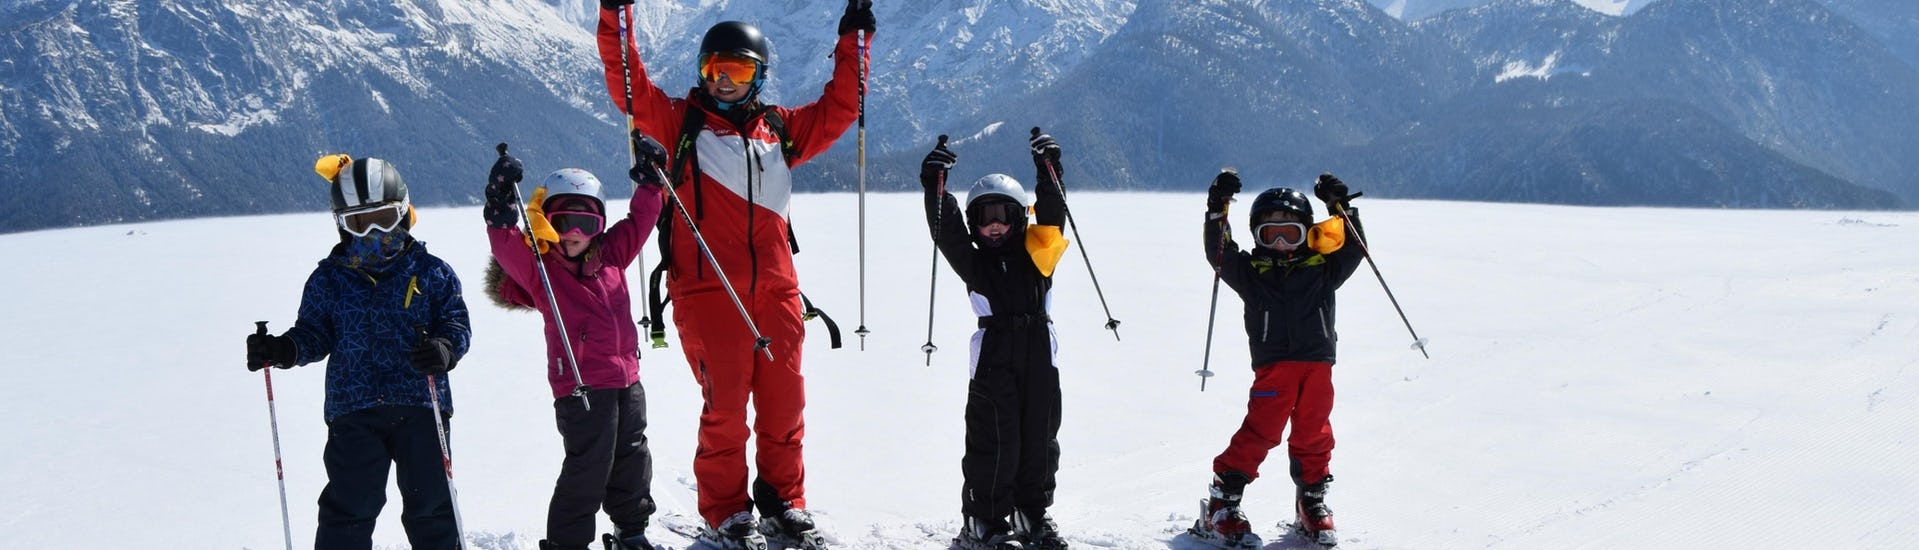 Ski Lessons for Teens (11-15 years) - Advanced